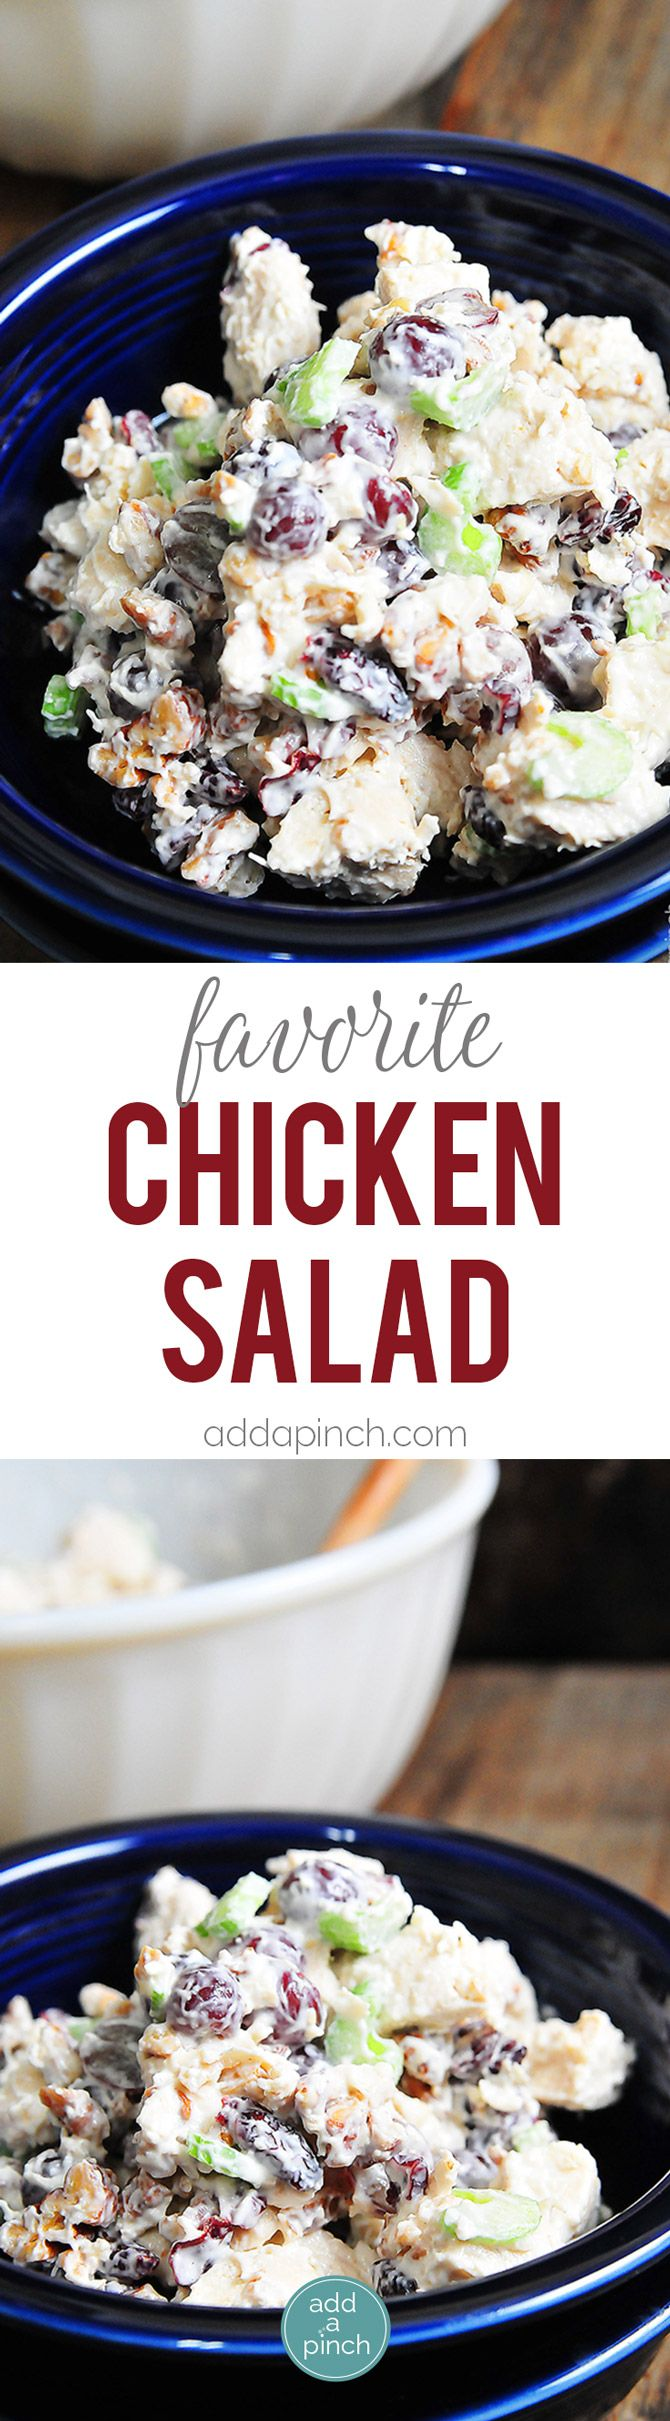 Chicken Salad Recipe - This chickens salad recipe makes a delicious, quick meal. Made with chicken, grapes, and roasted nuts, it is always a favorite! If you wish you can make this with Greek yogurt instead of mayo to lighten this up a bit. It is most definitely one of my go-to favorites! // addapinch.com